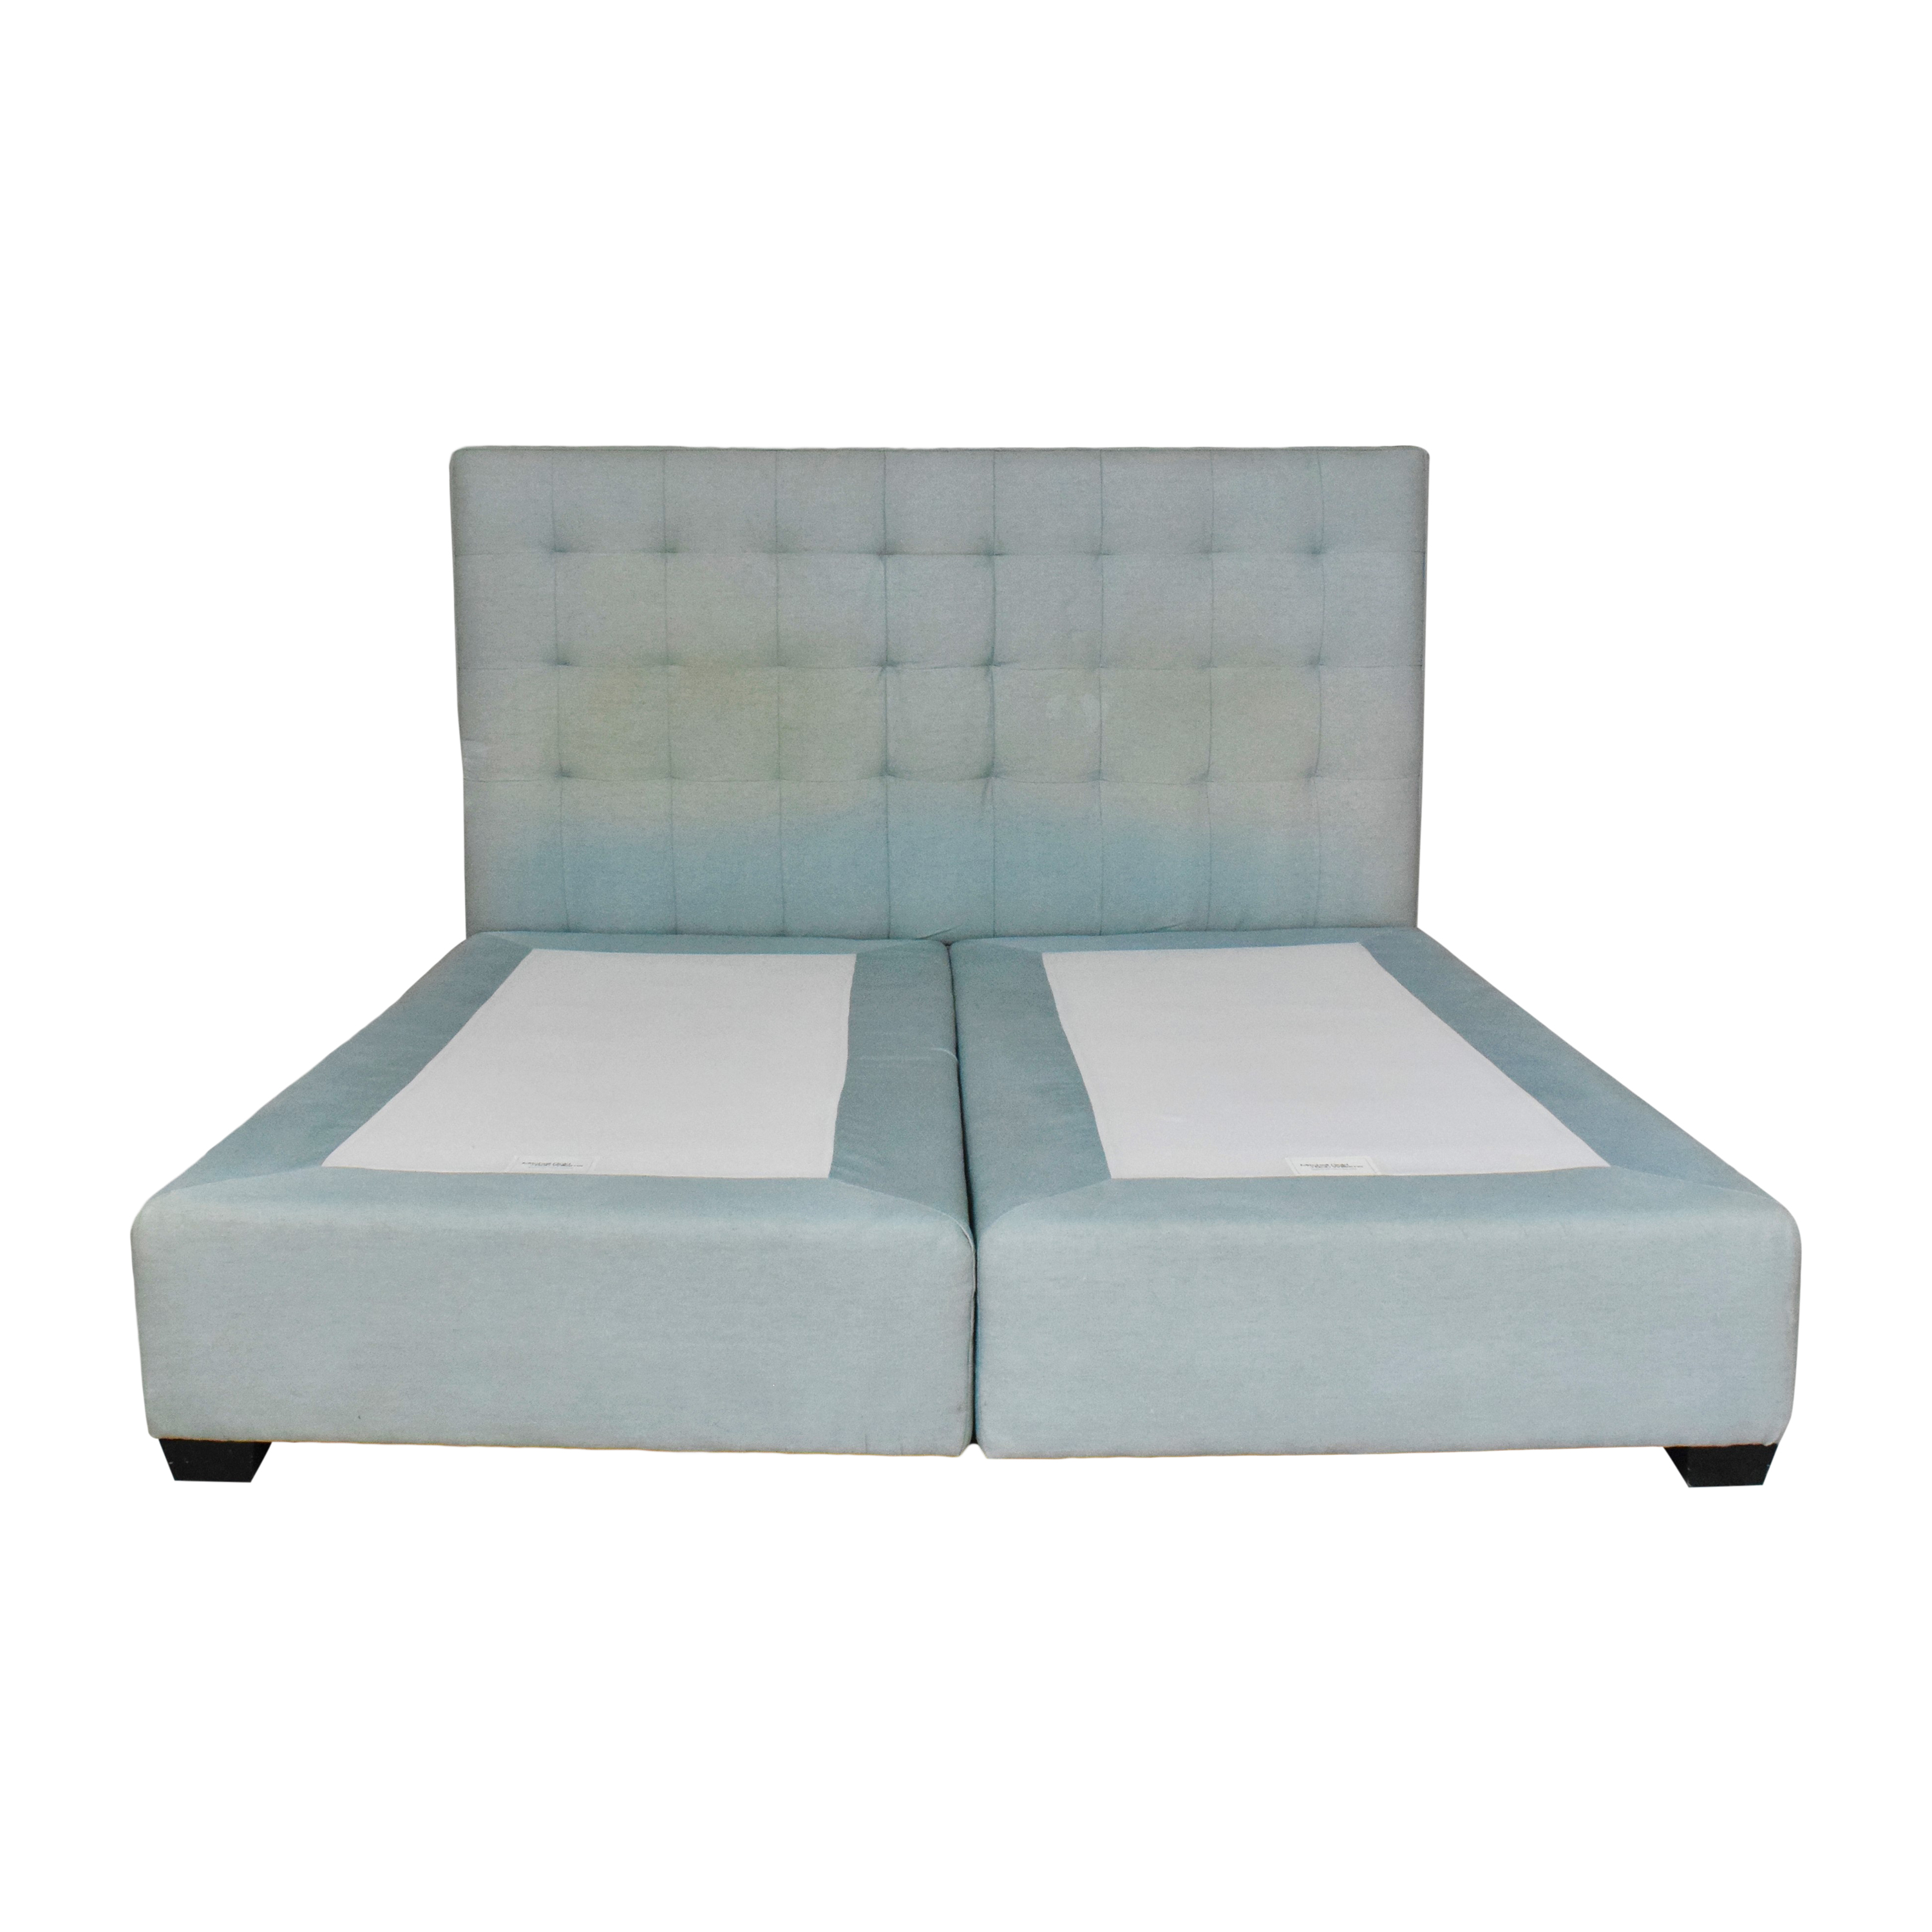 Mitchell Gold + Bob Williams Mitchell Gold + Bob Williams Butler Tufted King Bed Bed Frames